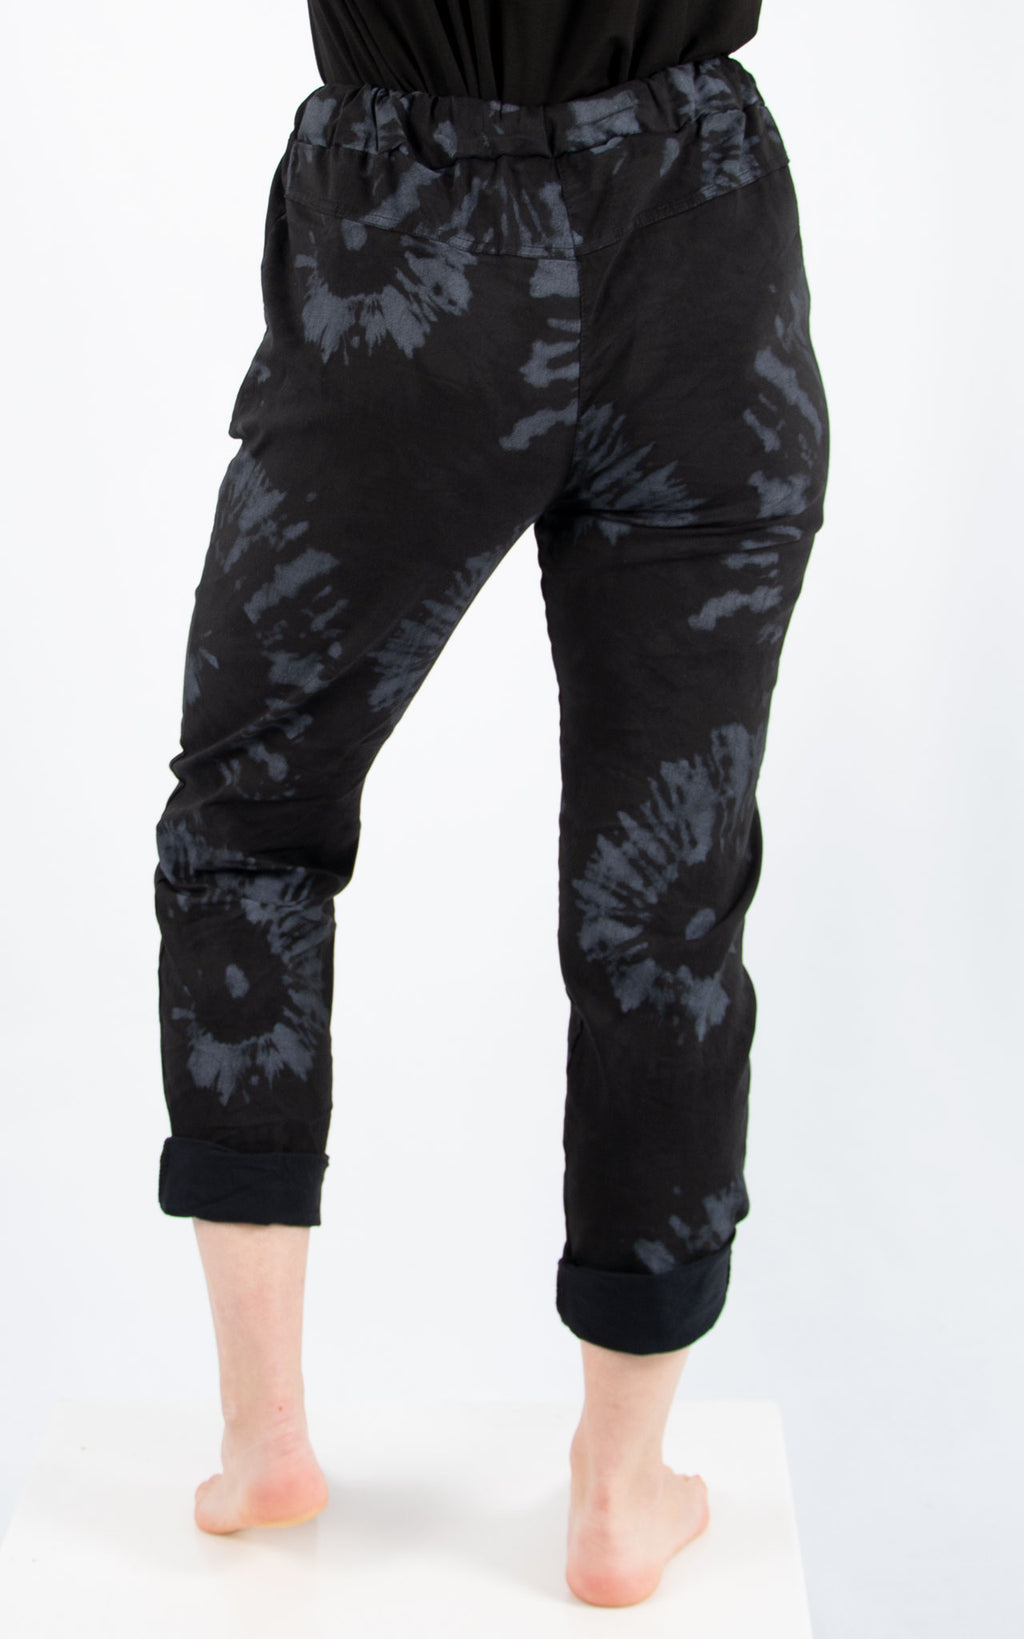 Magic Jogger : Black Splatter| Made In Italy